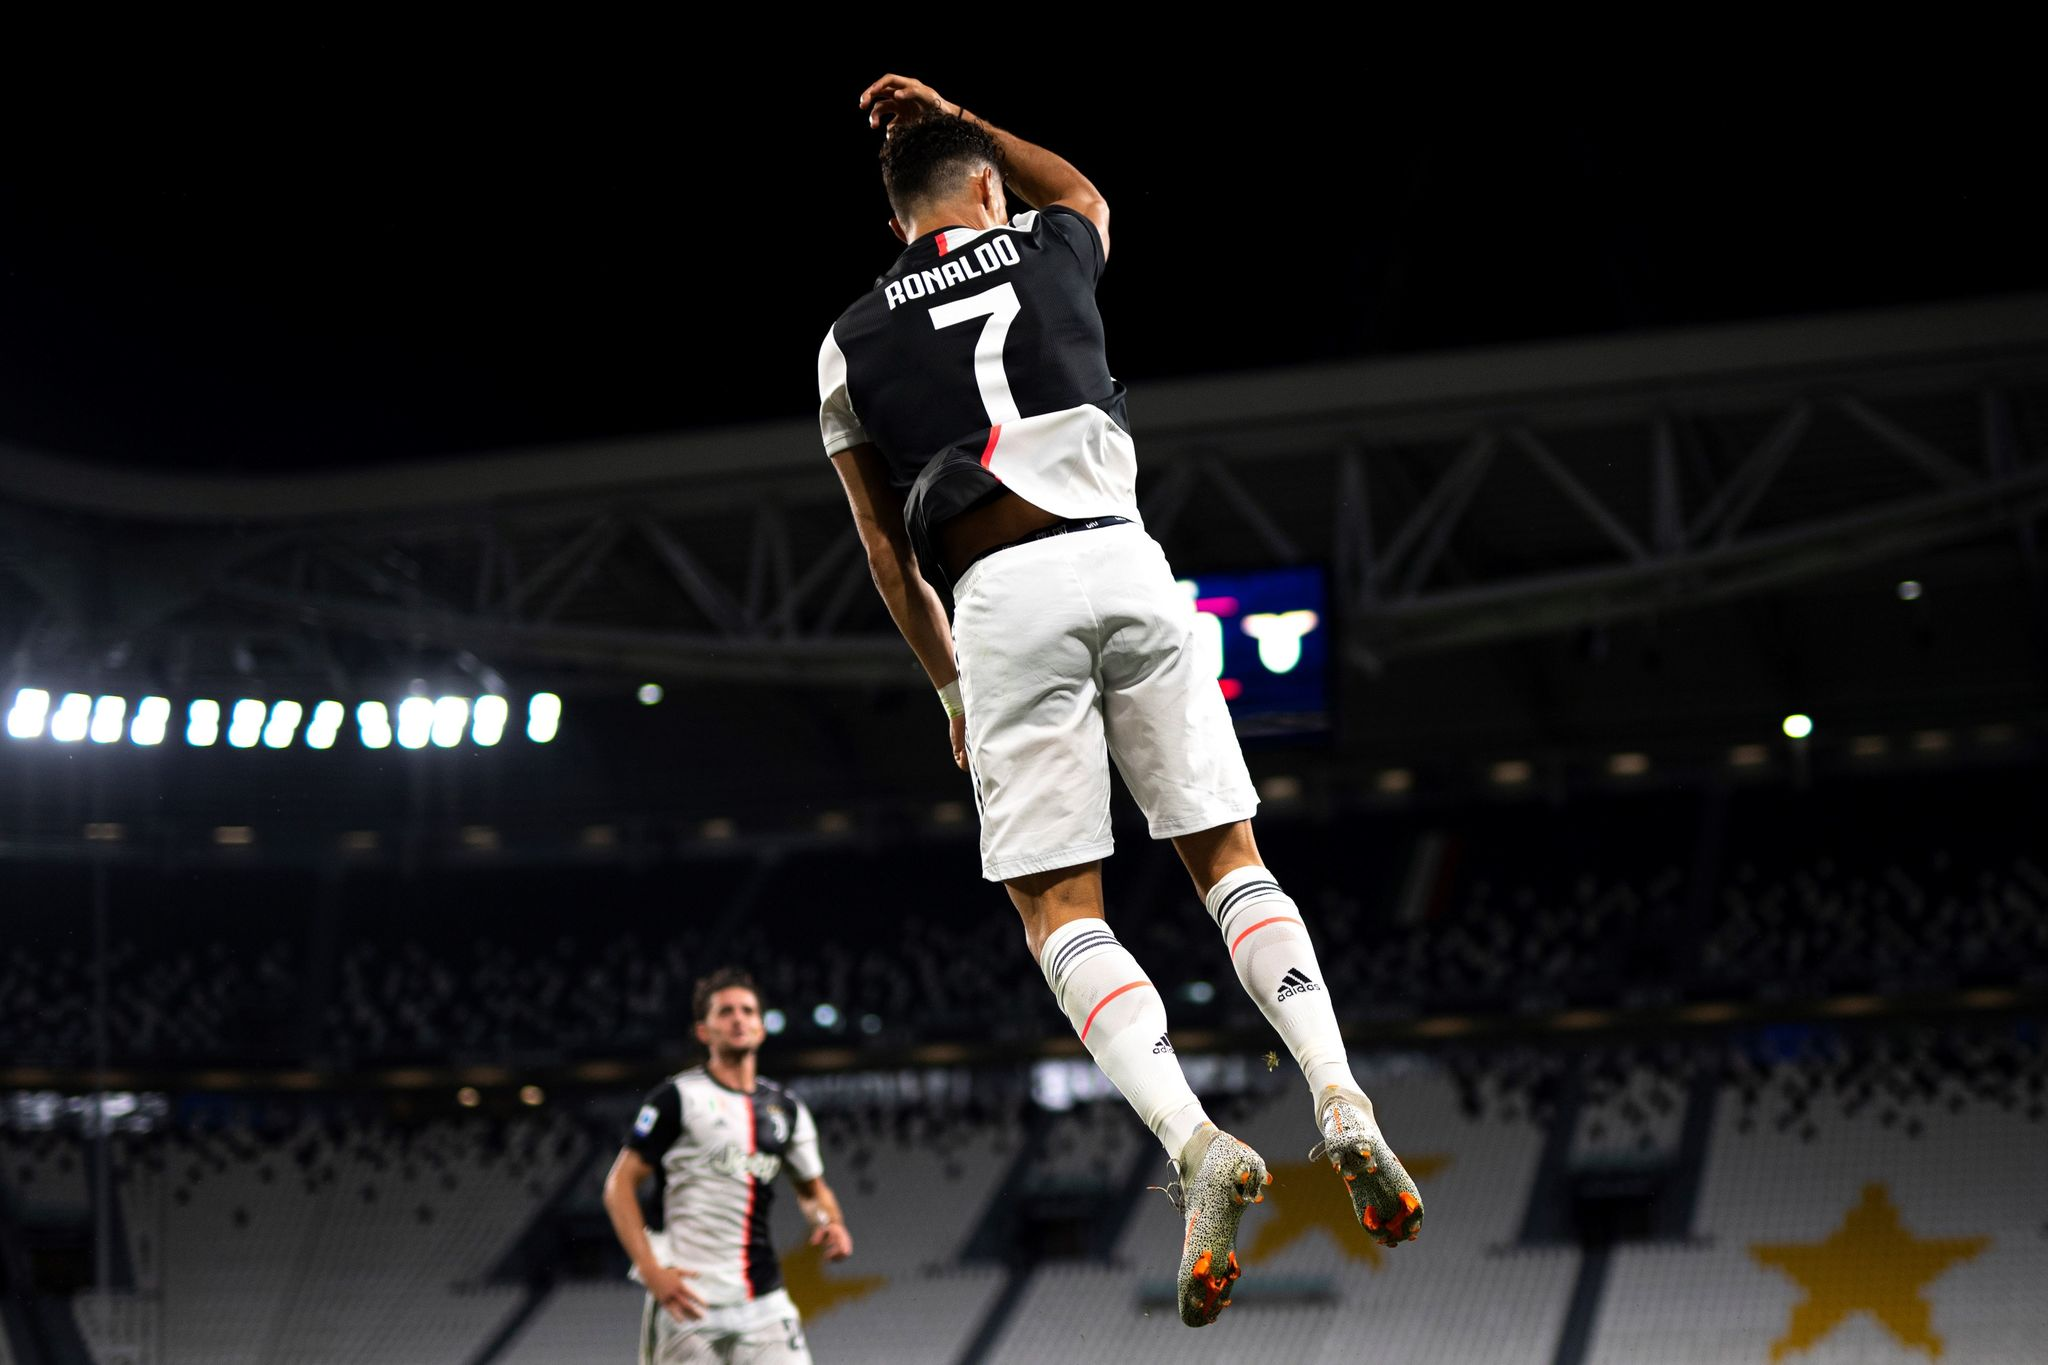 Juventus Portuguese forward lt;HIT gt;Cristiano lt;/HIT gt; lt;HIT gt;Ronaldo lt;/HIT gt; celebrates after scoring the first goal during the Italian Serie A football match between Juventus and Lazio, on July 20, 2020 at the Allianz stadium, in Turin, northern Italy. (Photo by Marco Bertorello / AFP)